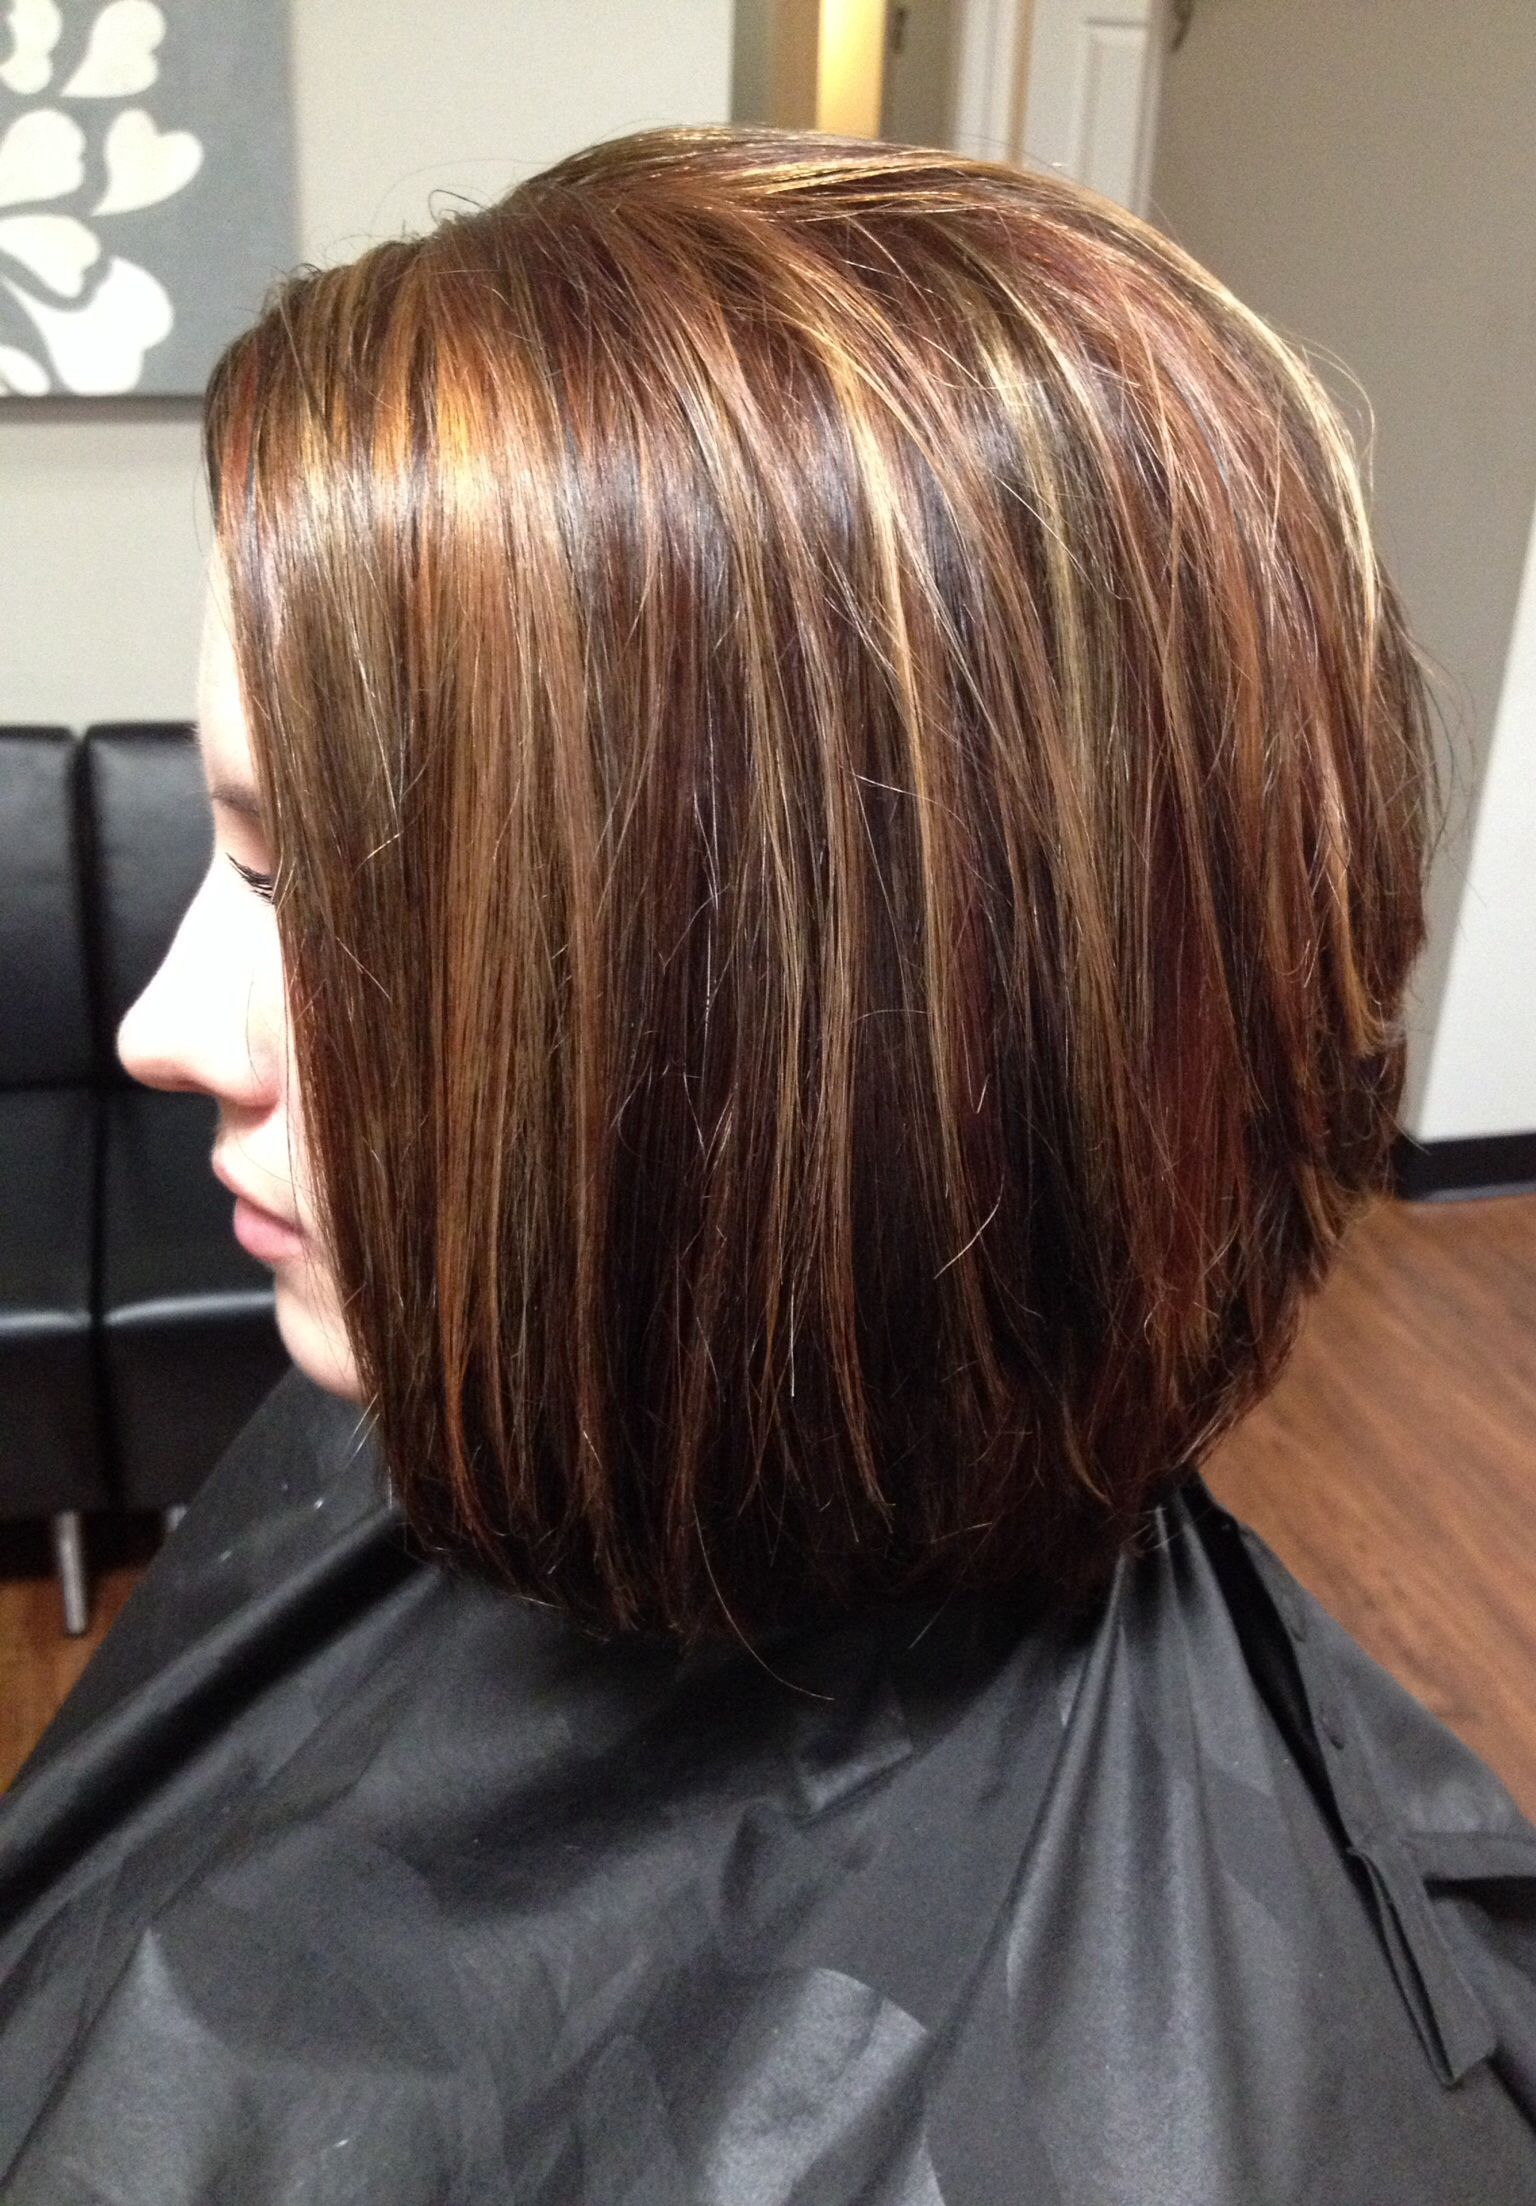 Hair Color Lowlights And Highlights Cut Stacked In The